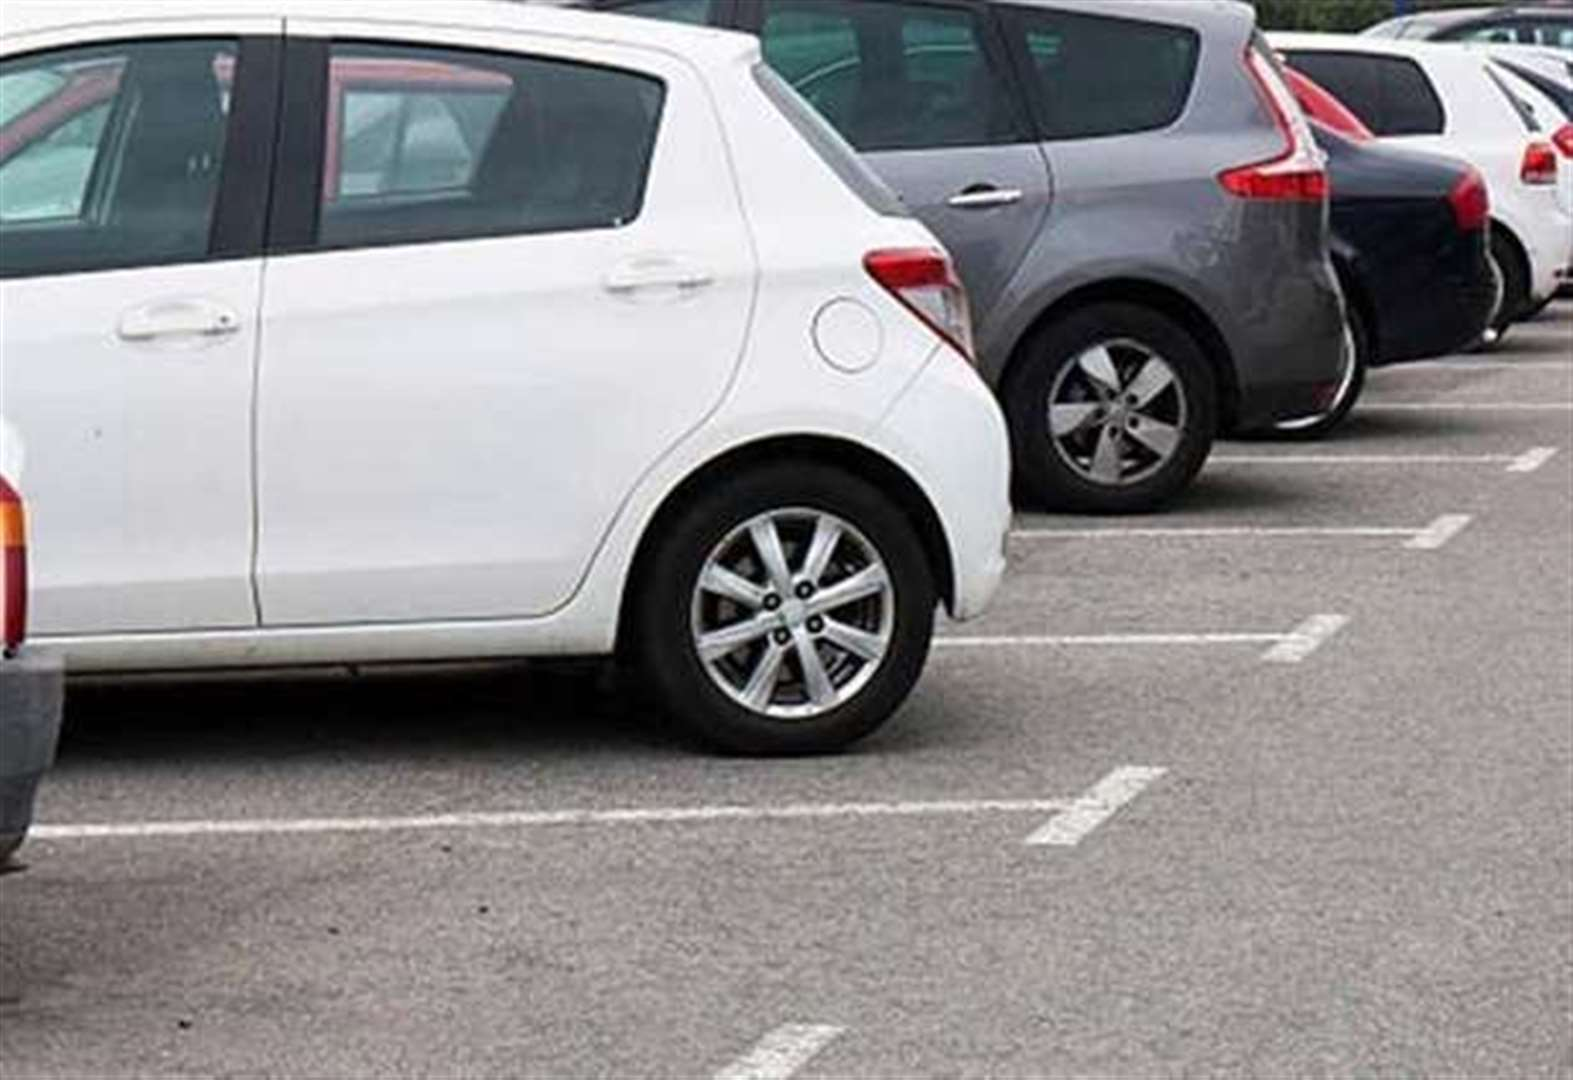 Parking charges in county car parks suspended to help key workers